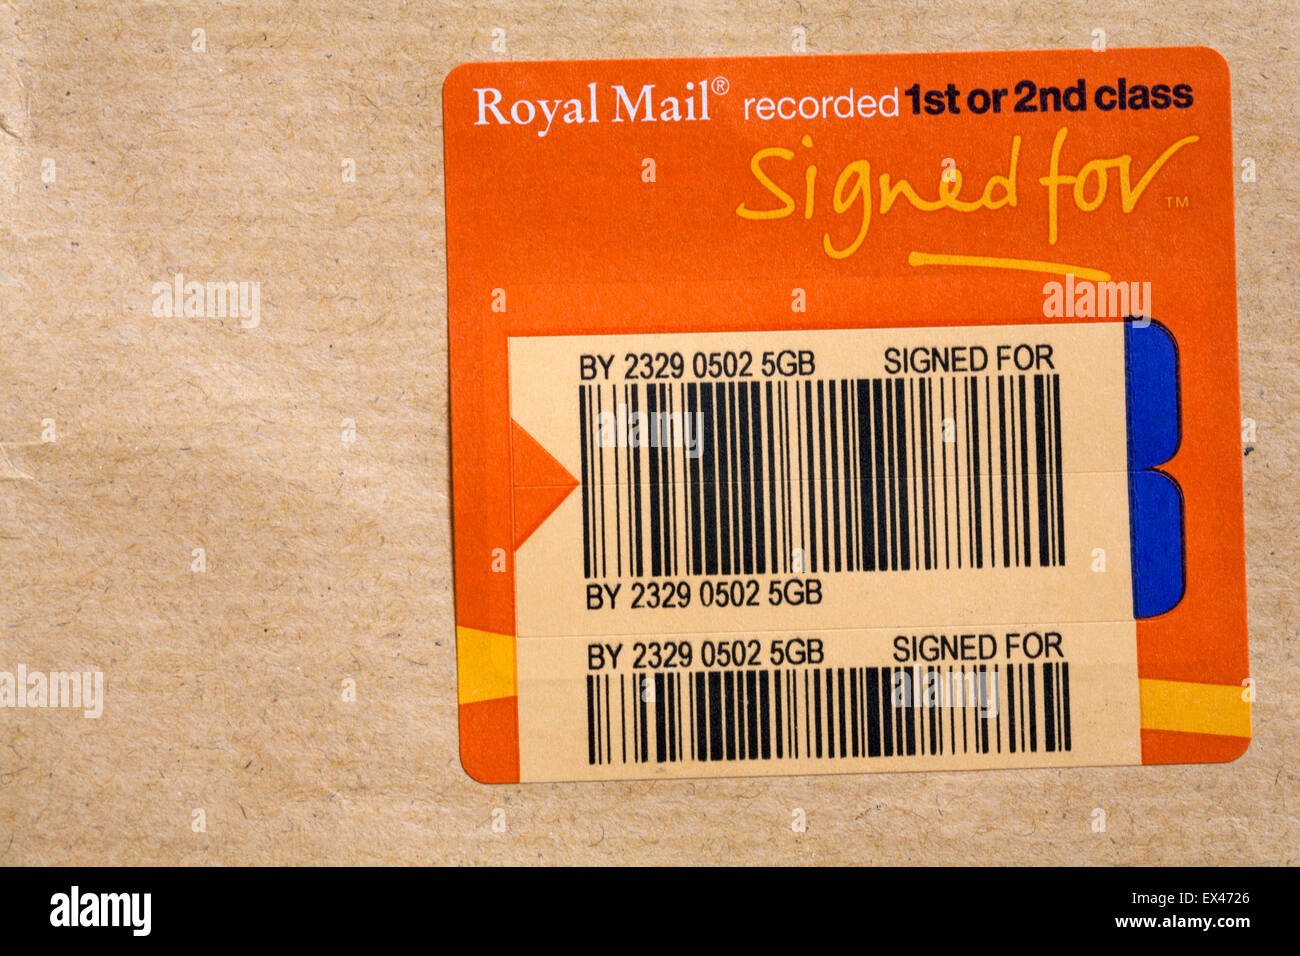 Royal Mail recorded label on brown envelope - Stock Image